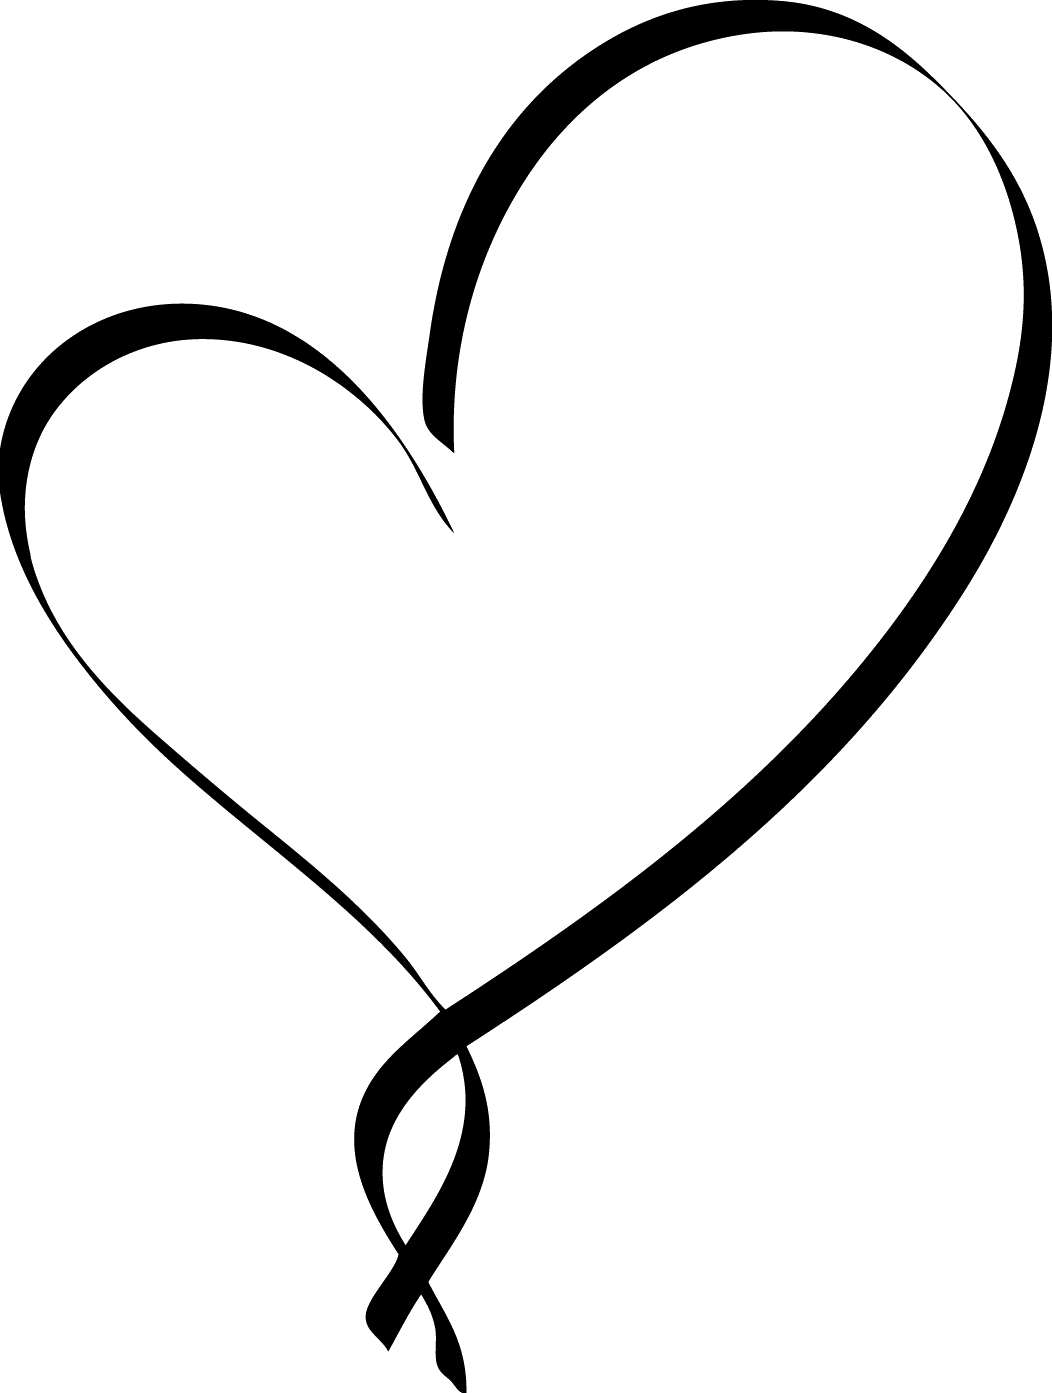 View Full Size Heart Clipart Script Fancy Black Heart Png Download And Download Transparent Clipart For Fre Clip Art Tattoo Lettering Fonts Colorful Heart